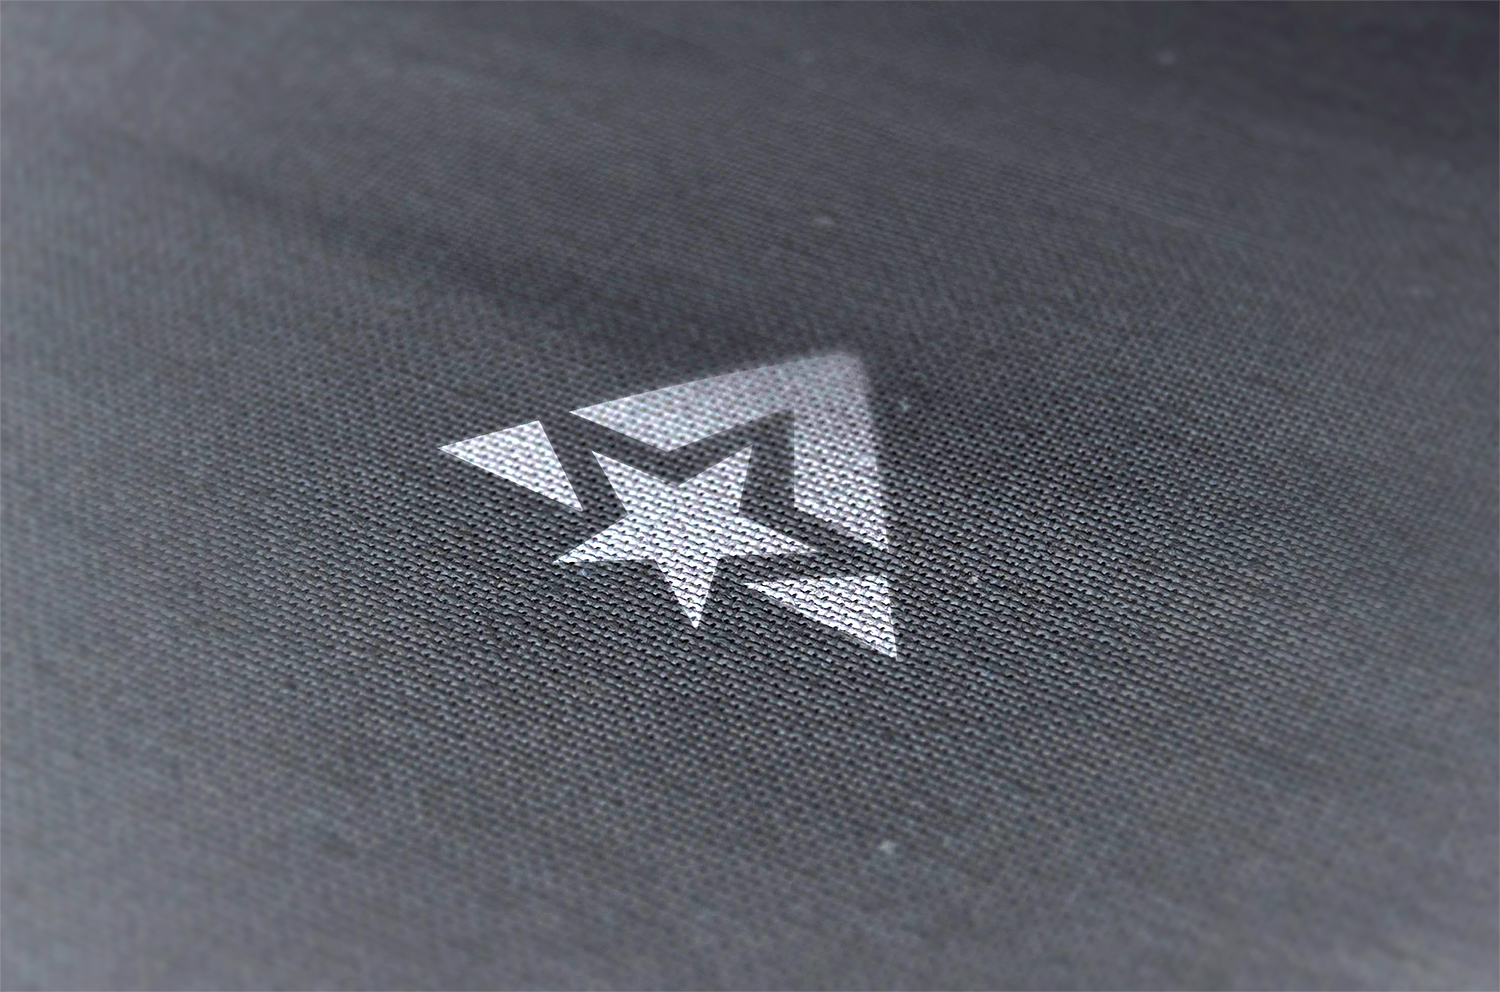 Pressed Logo Mockup on Fabric